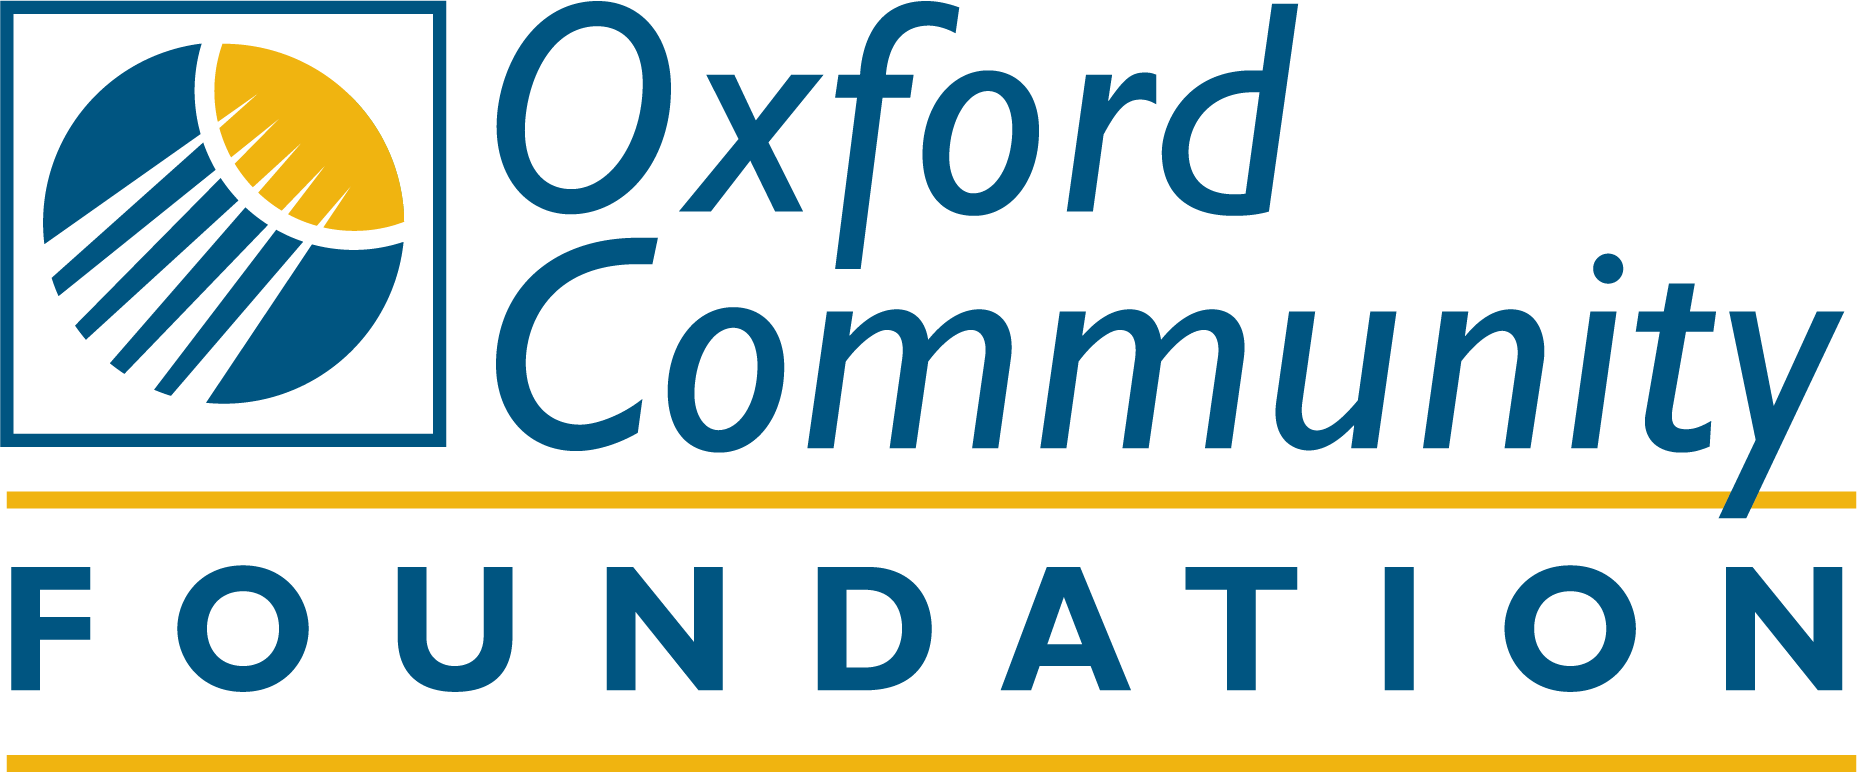 Oxford Community Foundation